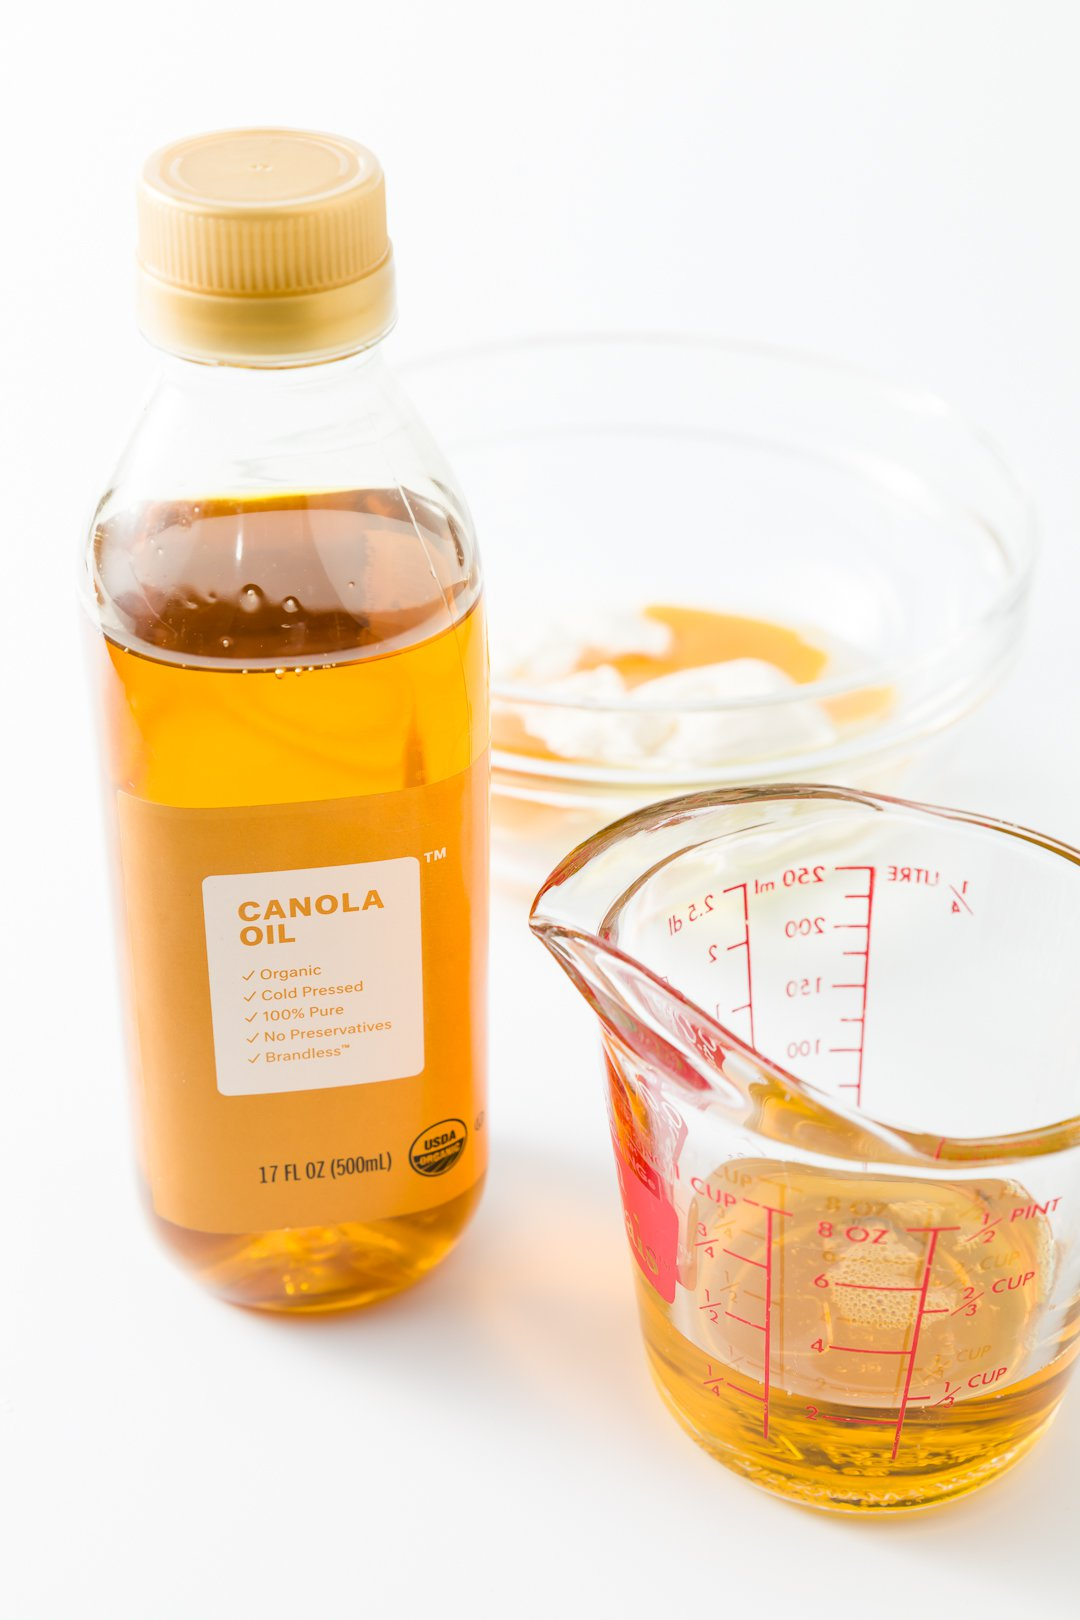 Canola oil from Brandless